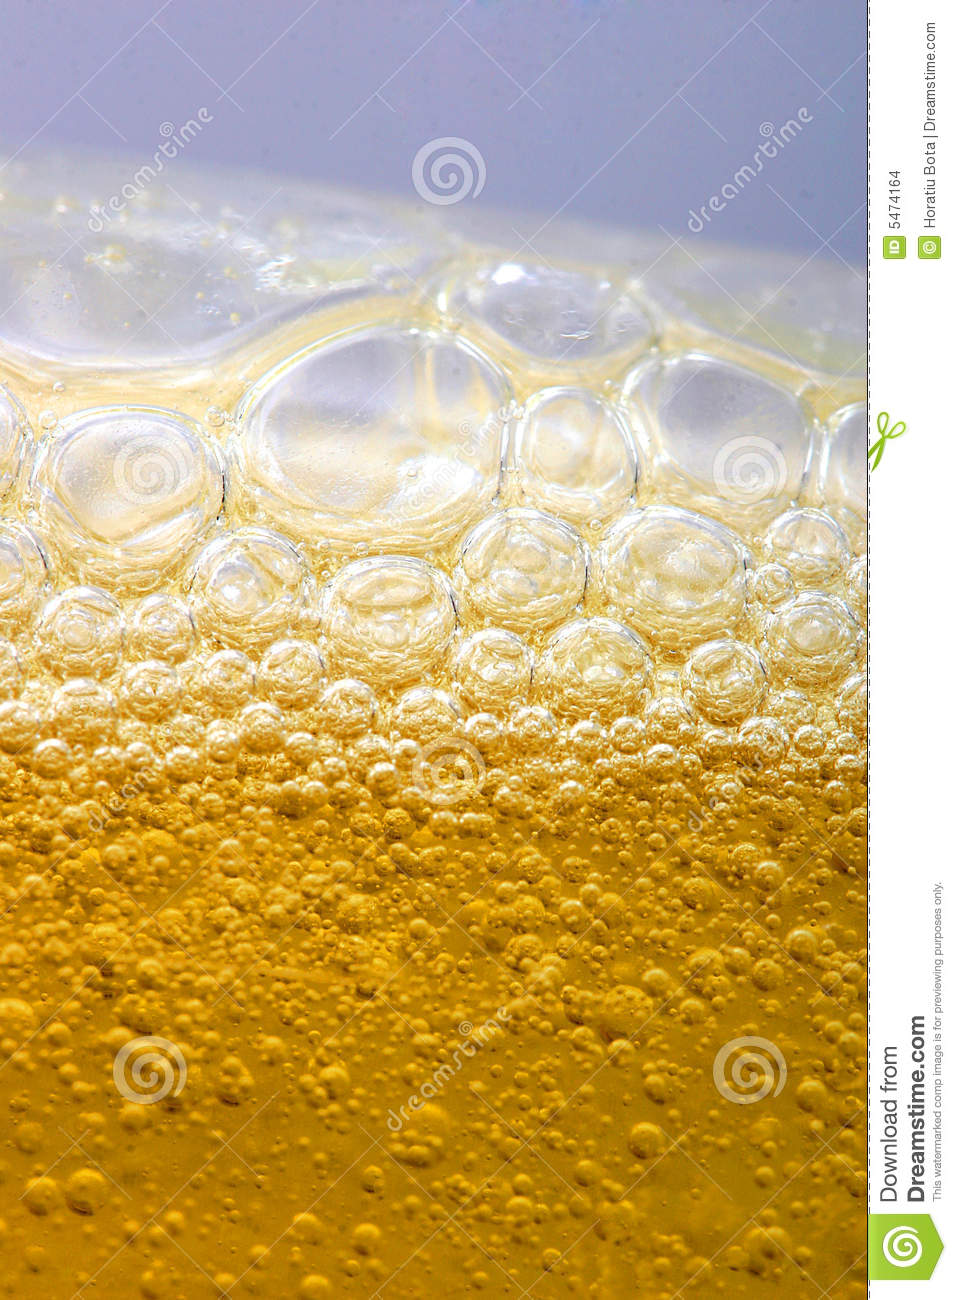 Bubbles in beer